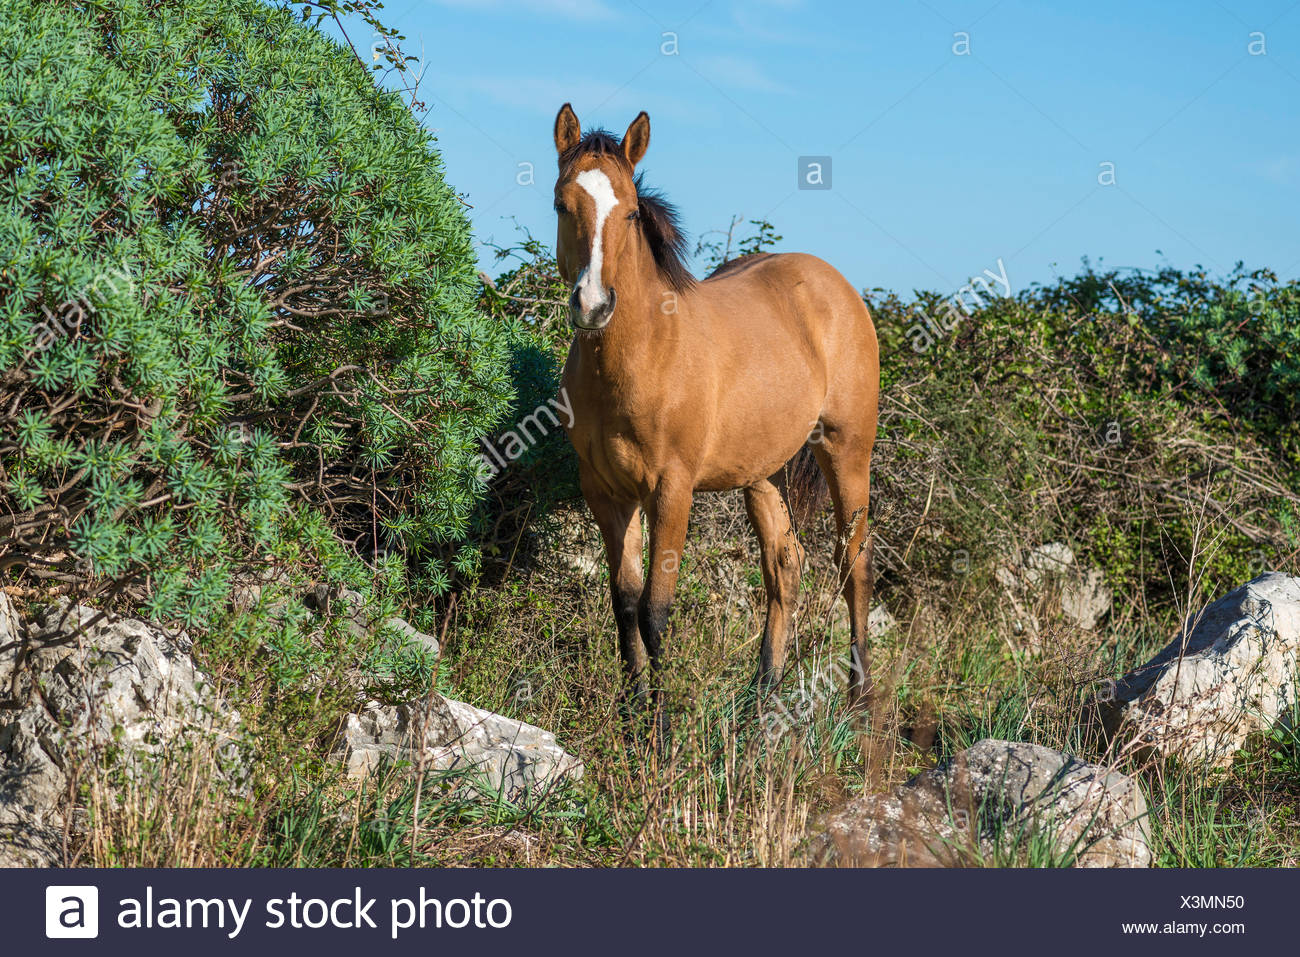 Horse, mare standing on rocky terrain, Parco delle Madonie, Madonie Regional Natural Park, near Collesano, Province of Palermo - Stock Image